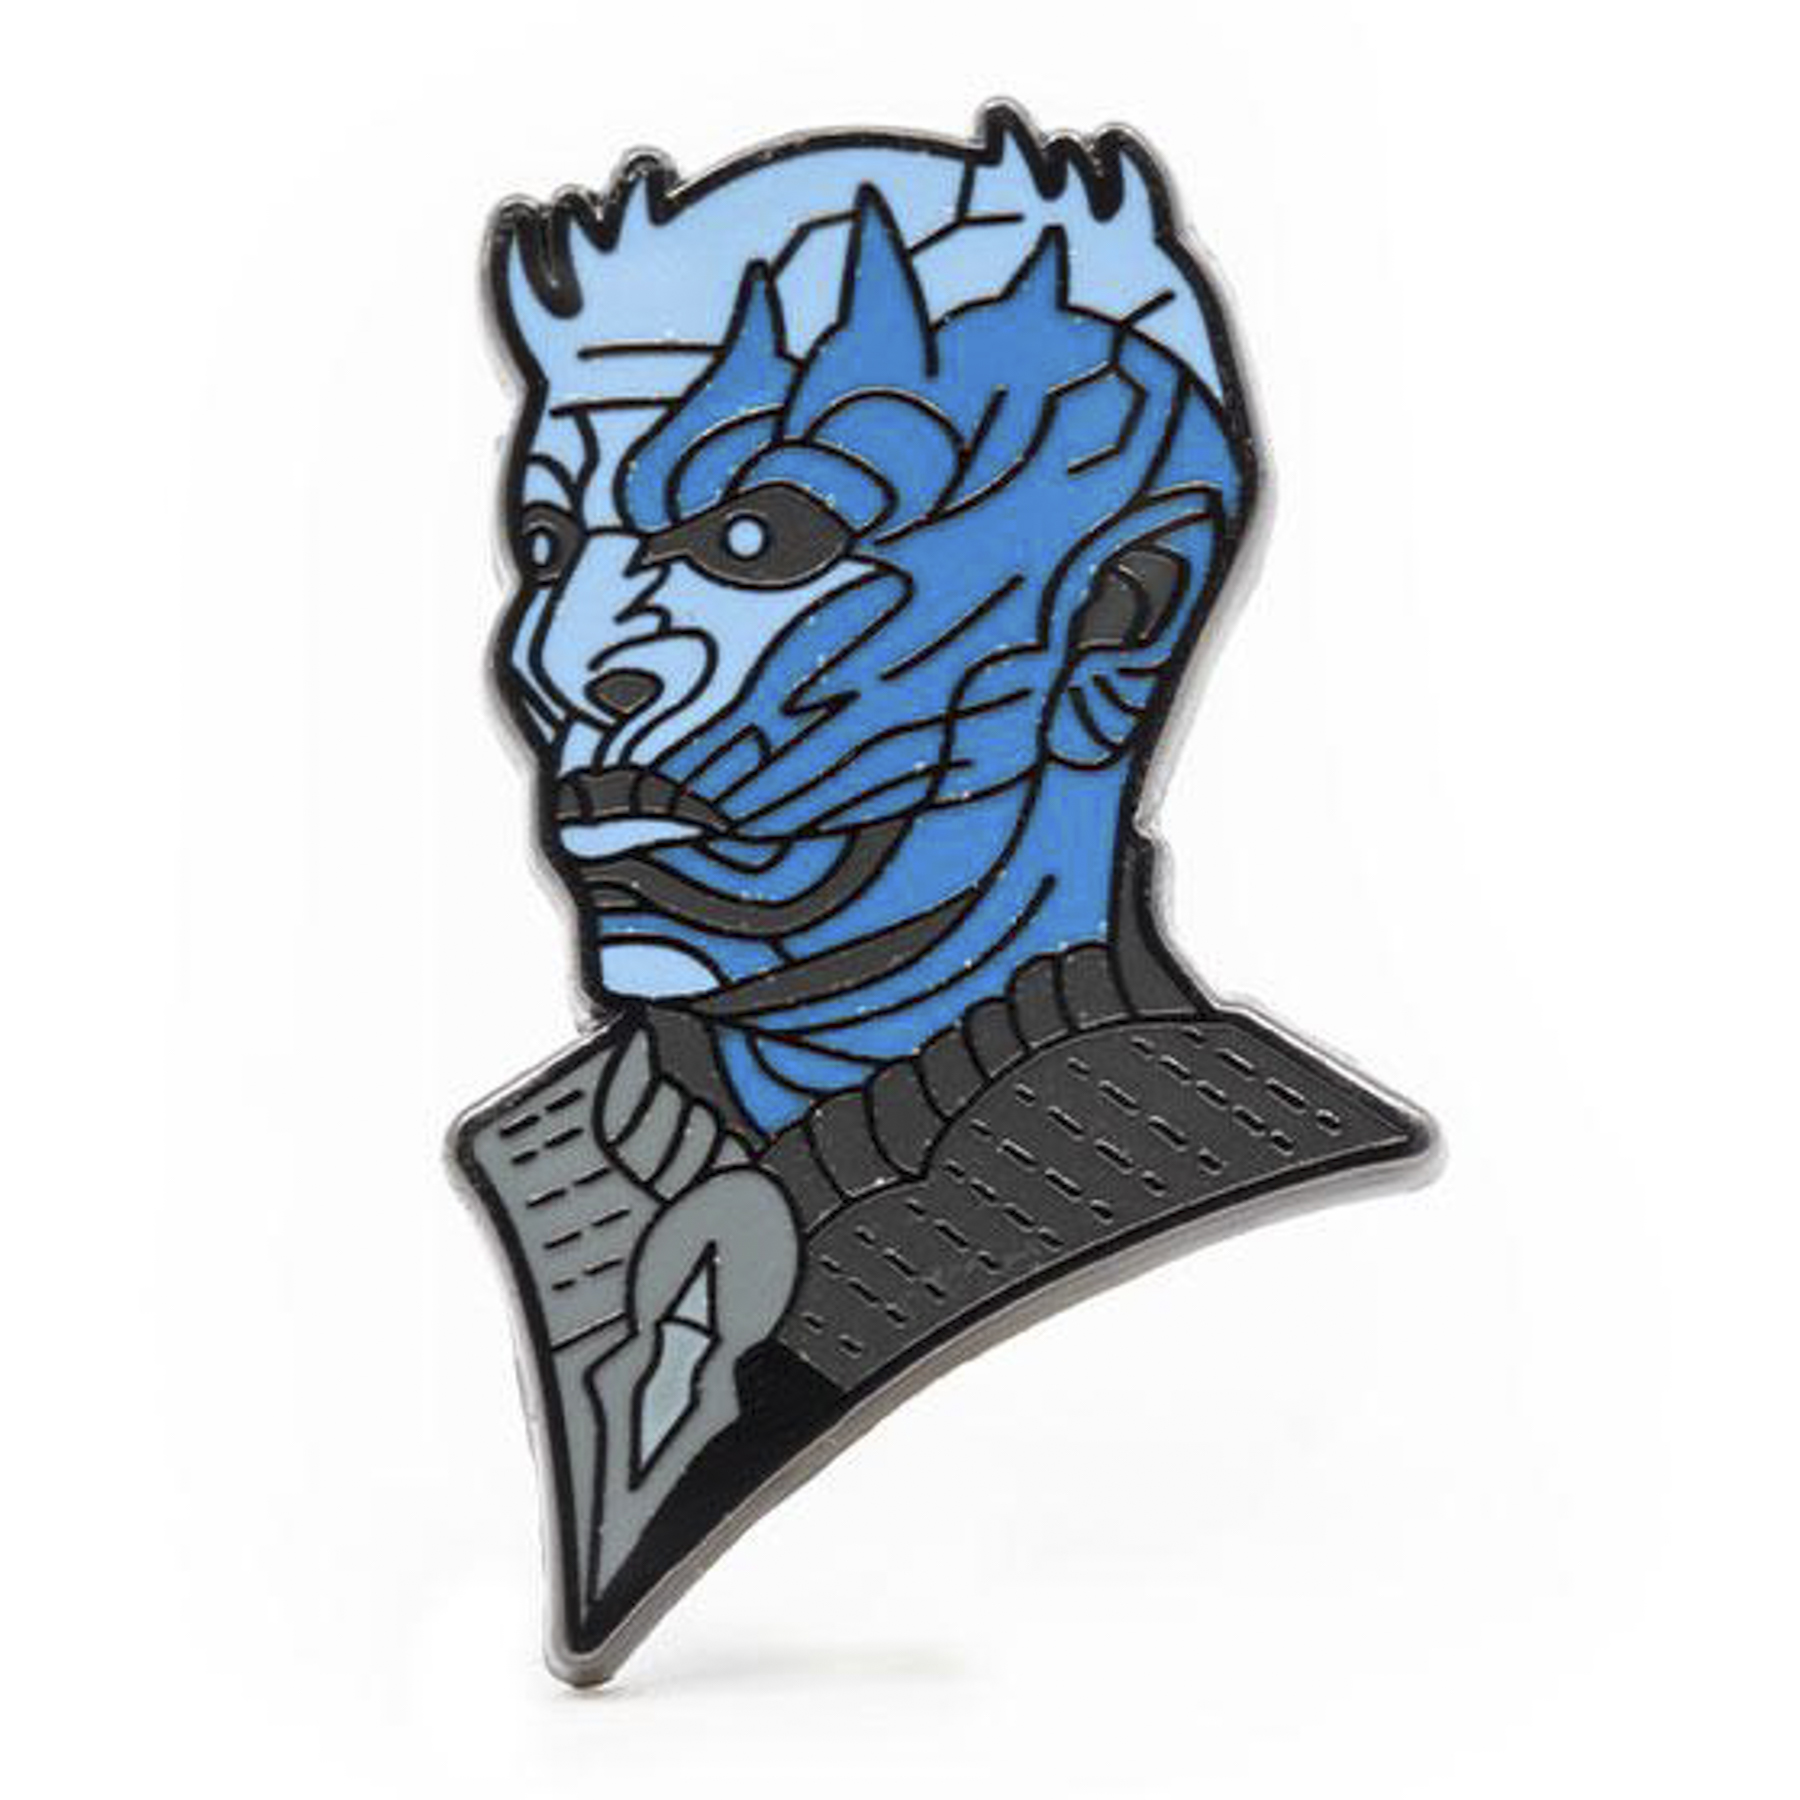 Robert Ball Exclusive Night King Pin from Game of Thrones https://shop.hbo.com/products/robert-ball-night-king-pin-from-game-of-thrones CR: HBO Shop